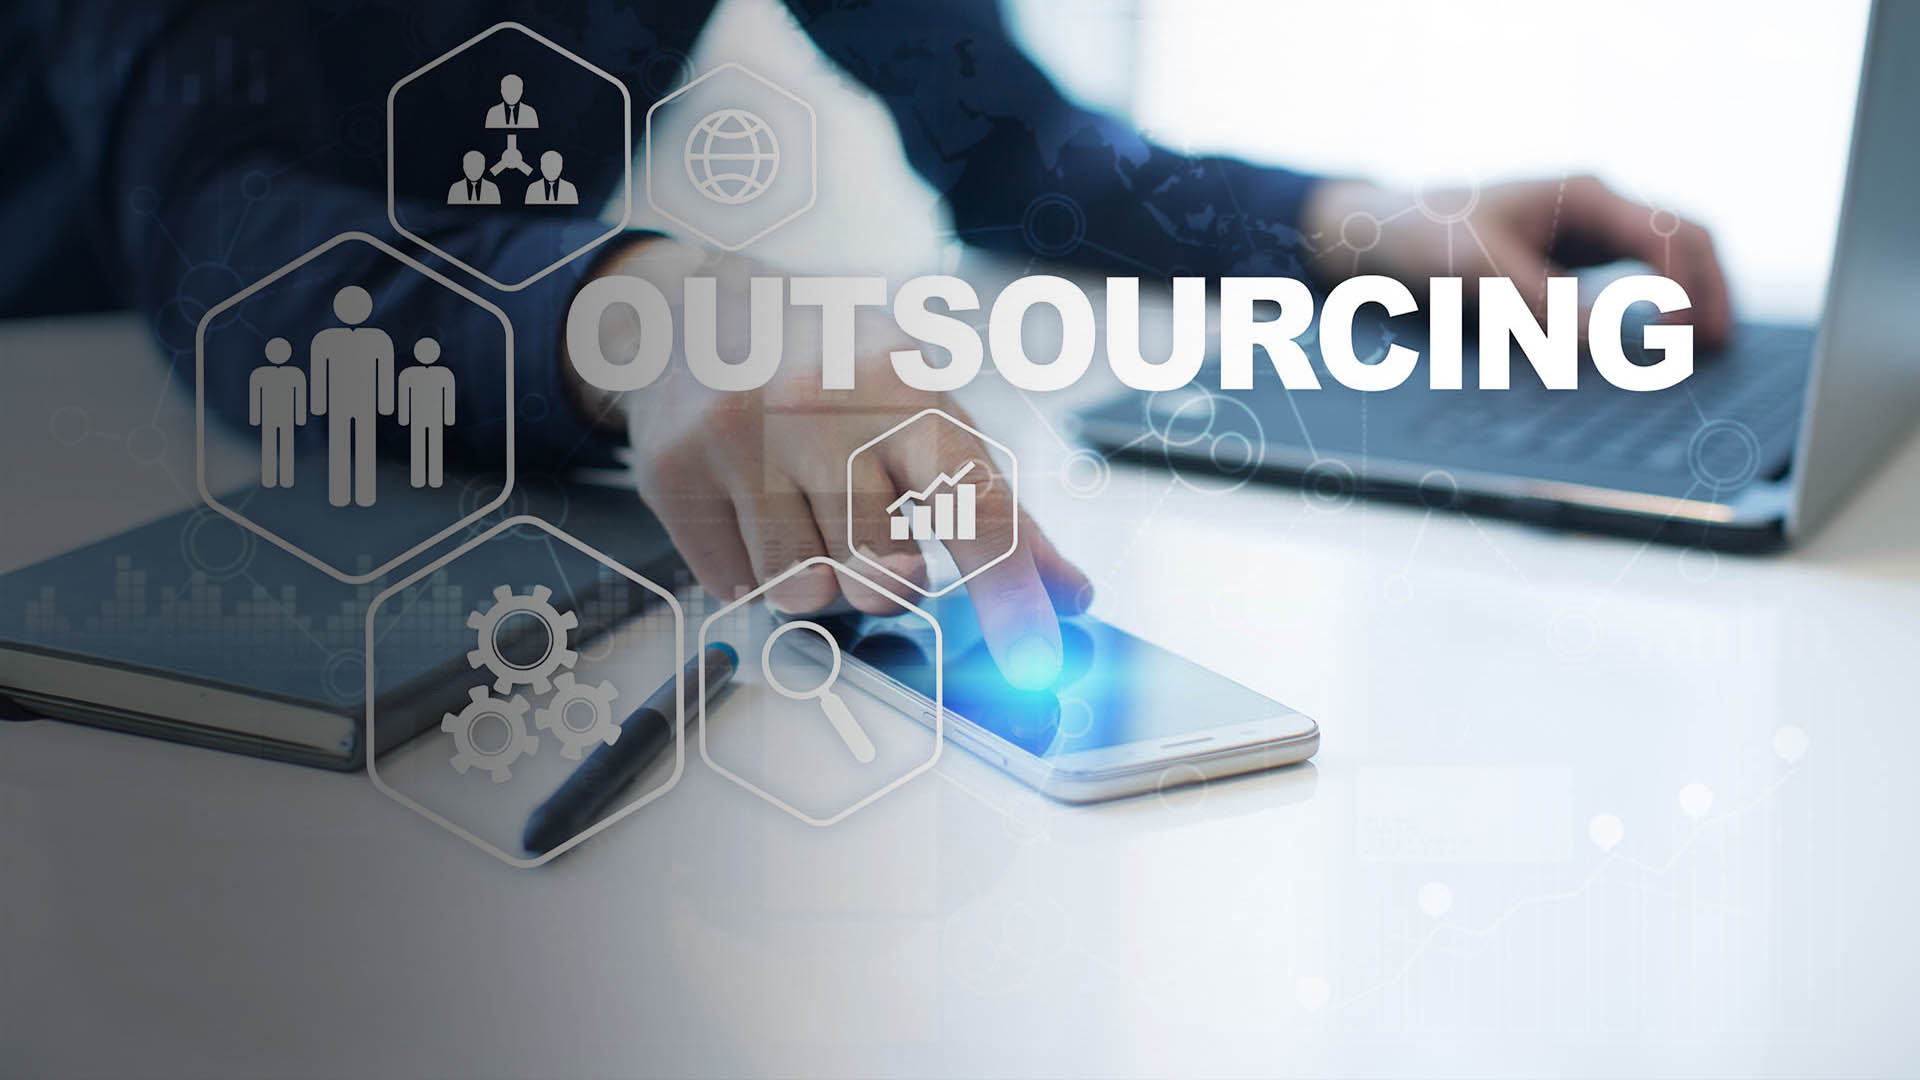 NextGen Outsourcing and Recruiting Services